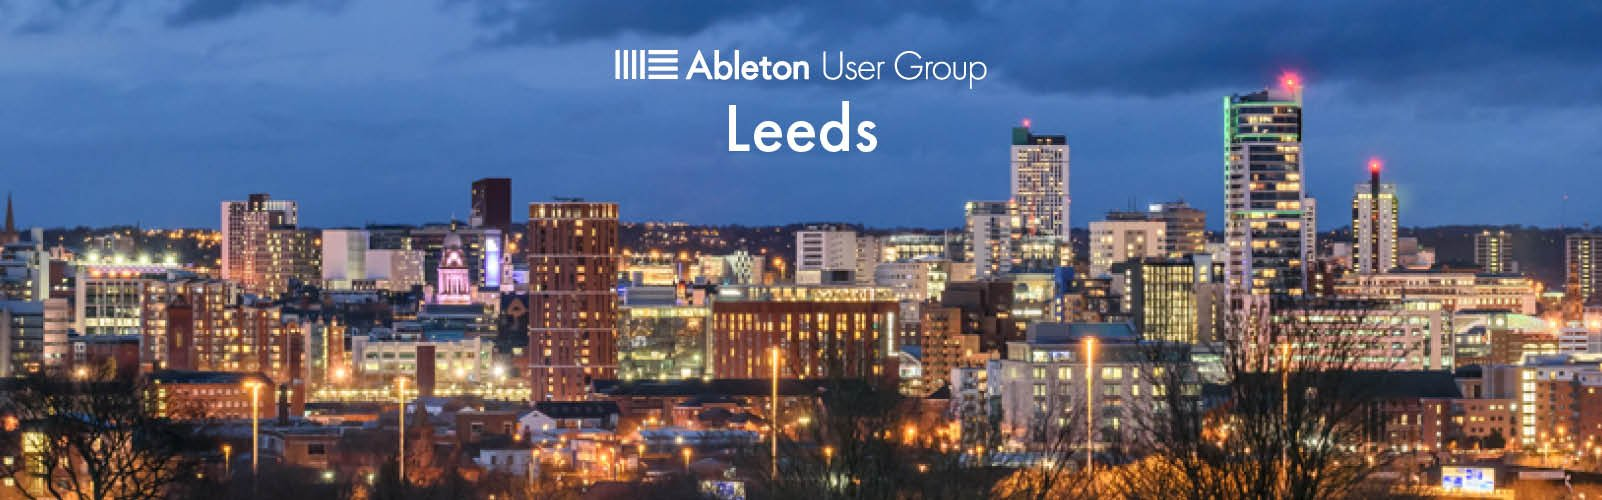 leeds user group.jpg